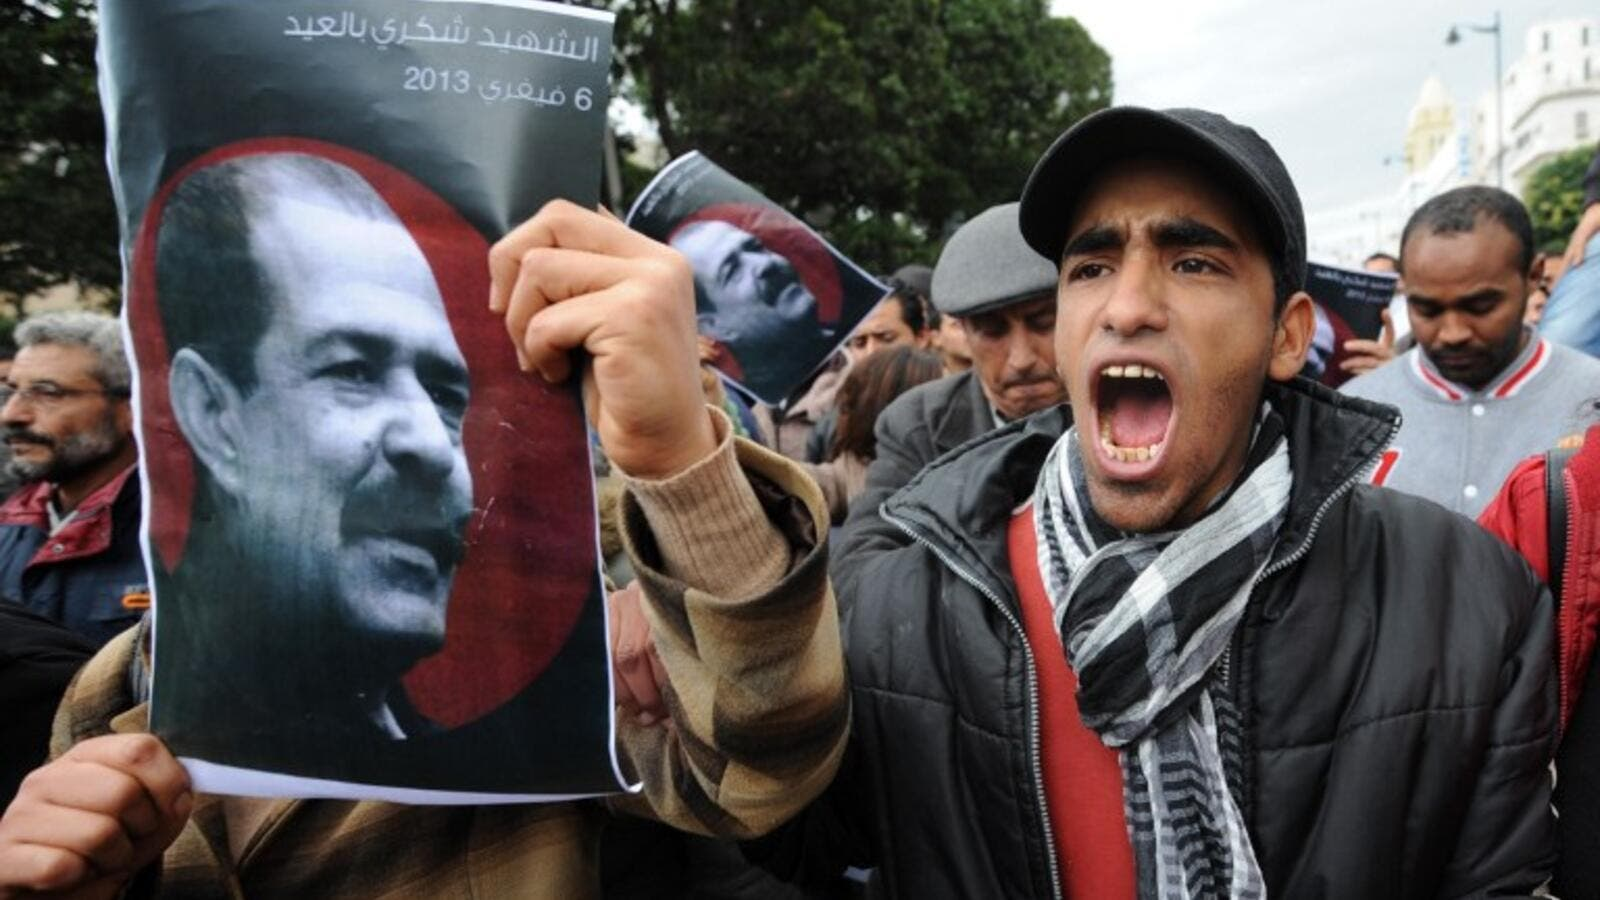 A Tunisian protestor holds a placard featuring killed opposition leader Chokri Belaid during a demonstration. (AFP PHOTO / FETHI BELAID)